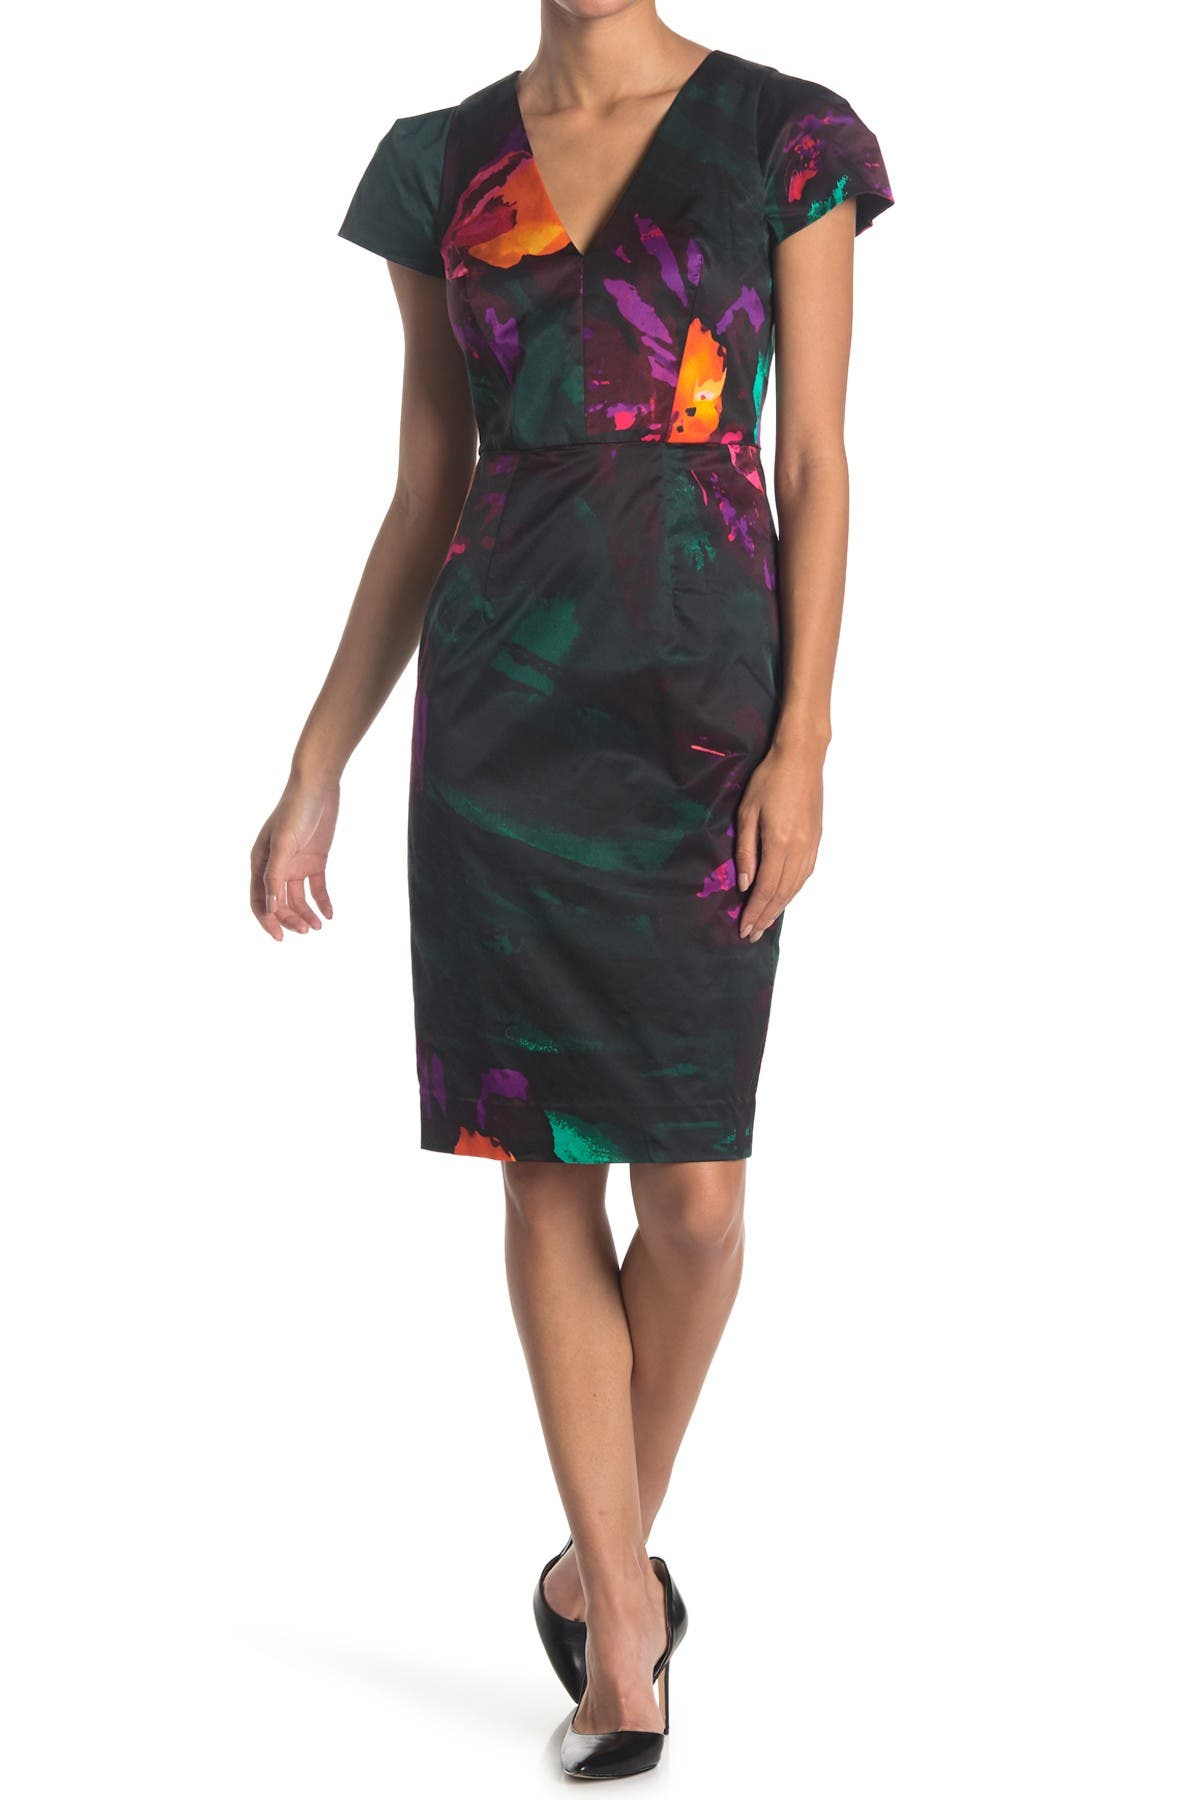 Image of MILLY Daphne Floral Print V-Neck Cap Sleeve Sheath Dress